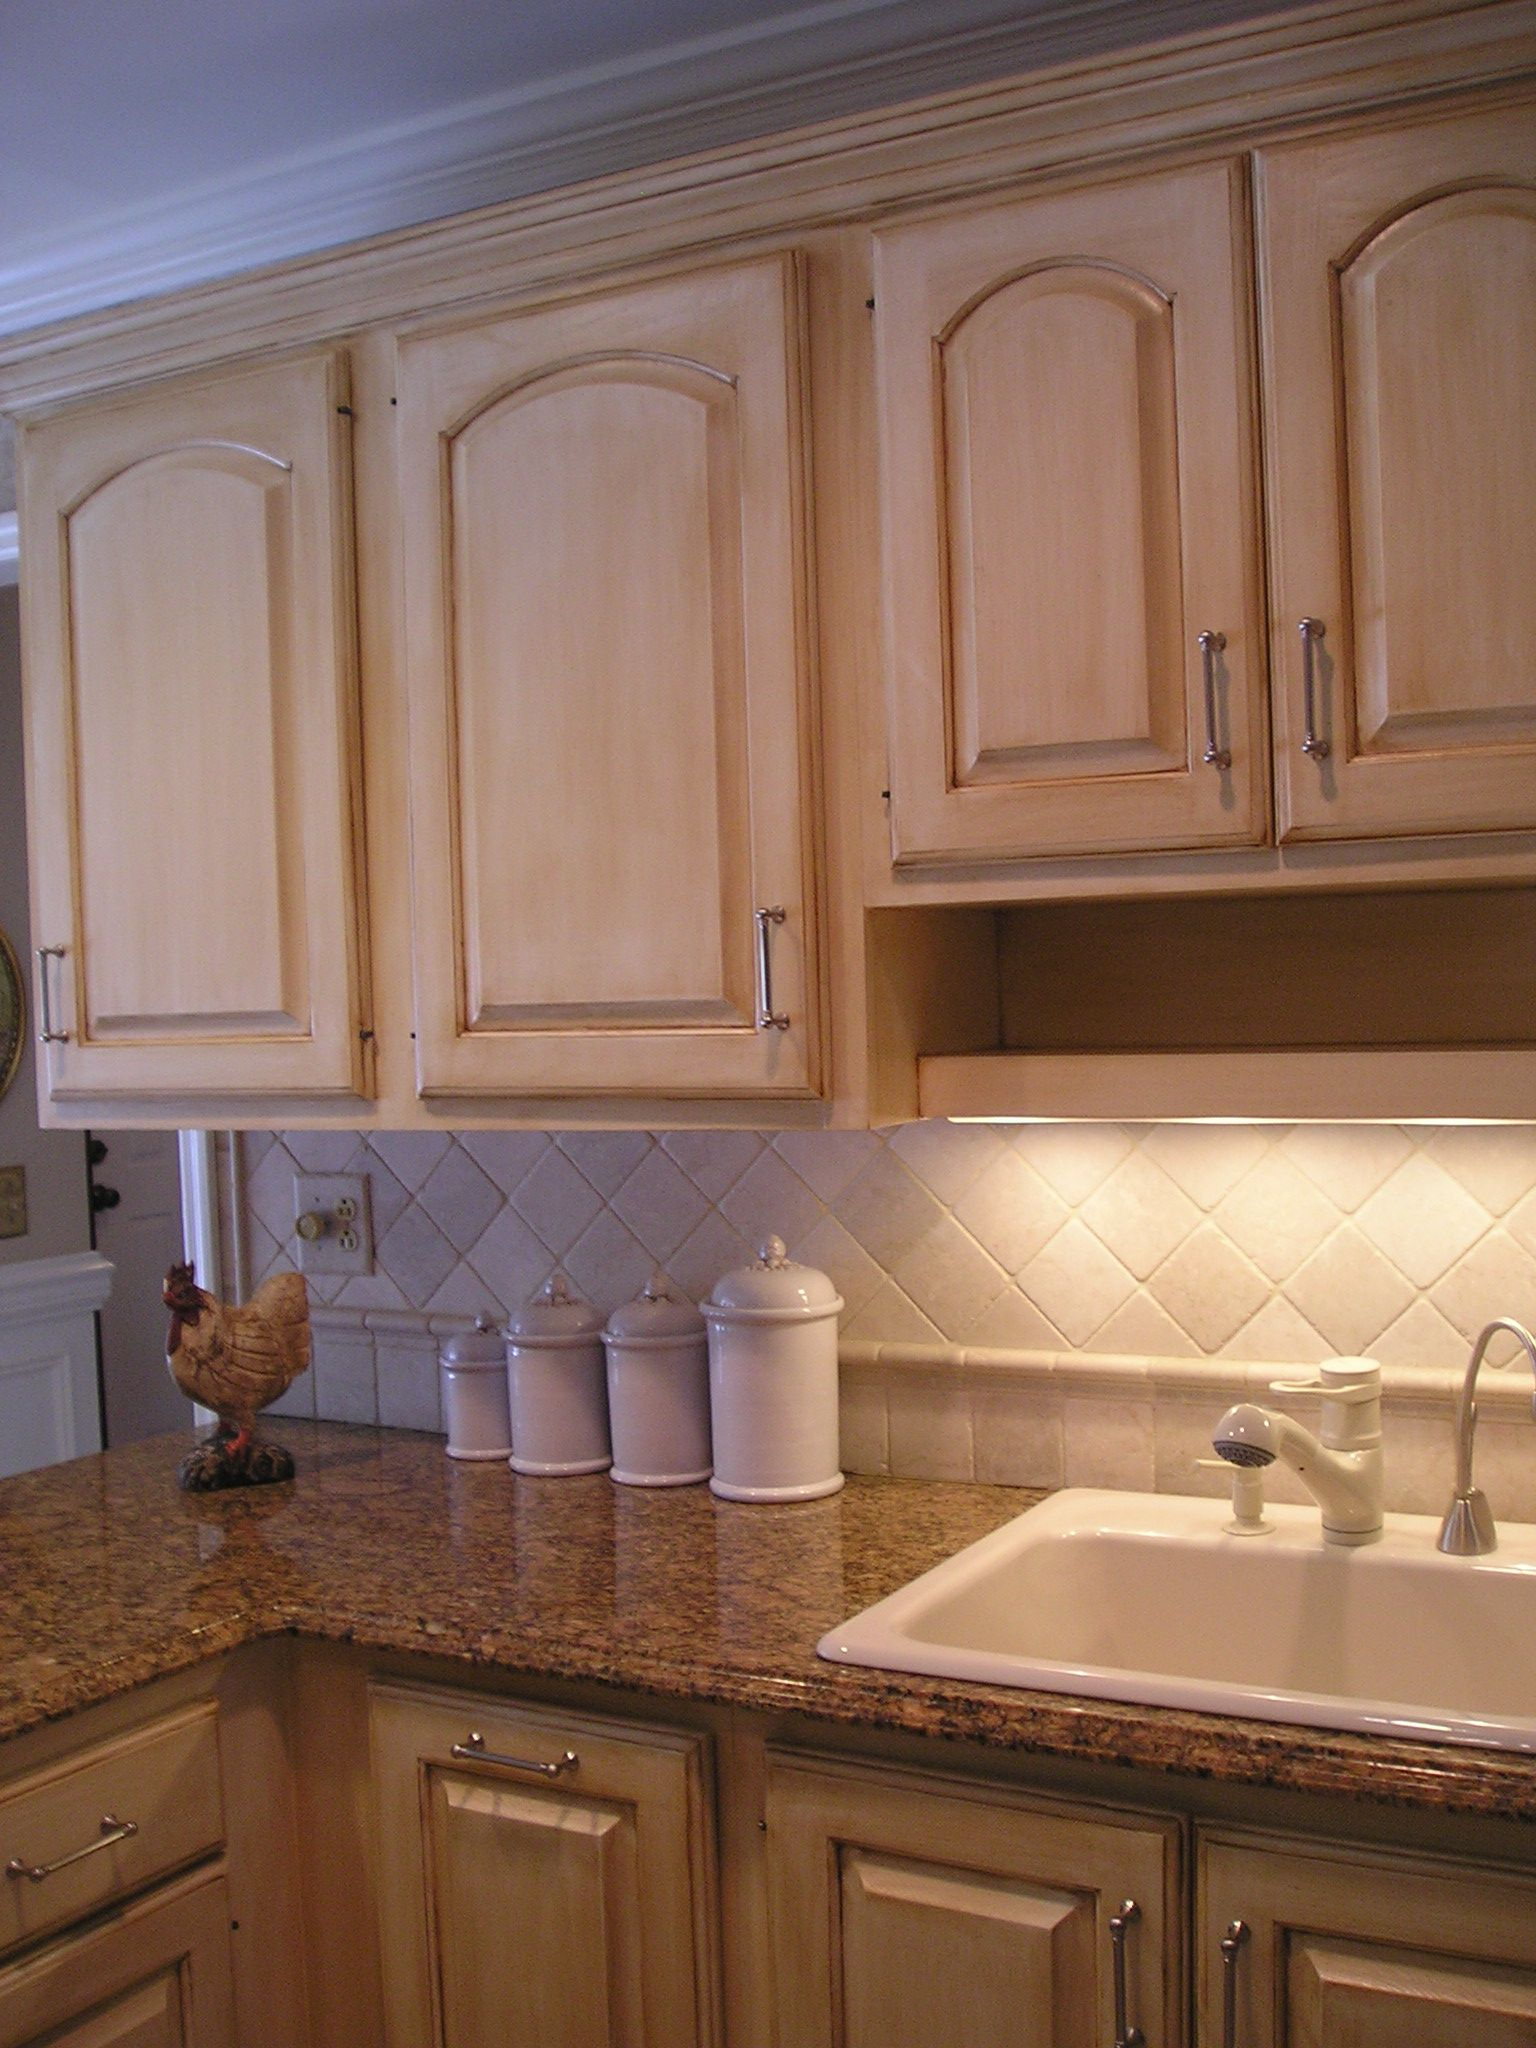 Cabinets Painted In A Linen White And Then Finished With A Beautiful Esspresso Glaze Repainting Kitchen Cabinets Brown Kitchen Cabinets Oak Kitchen Cabinets